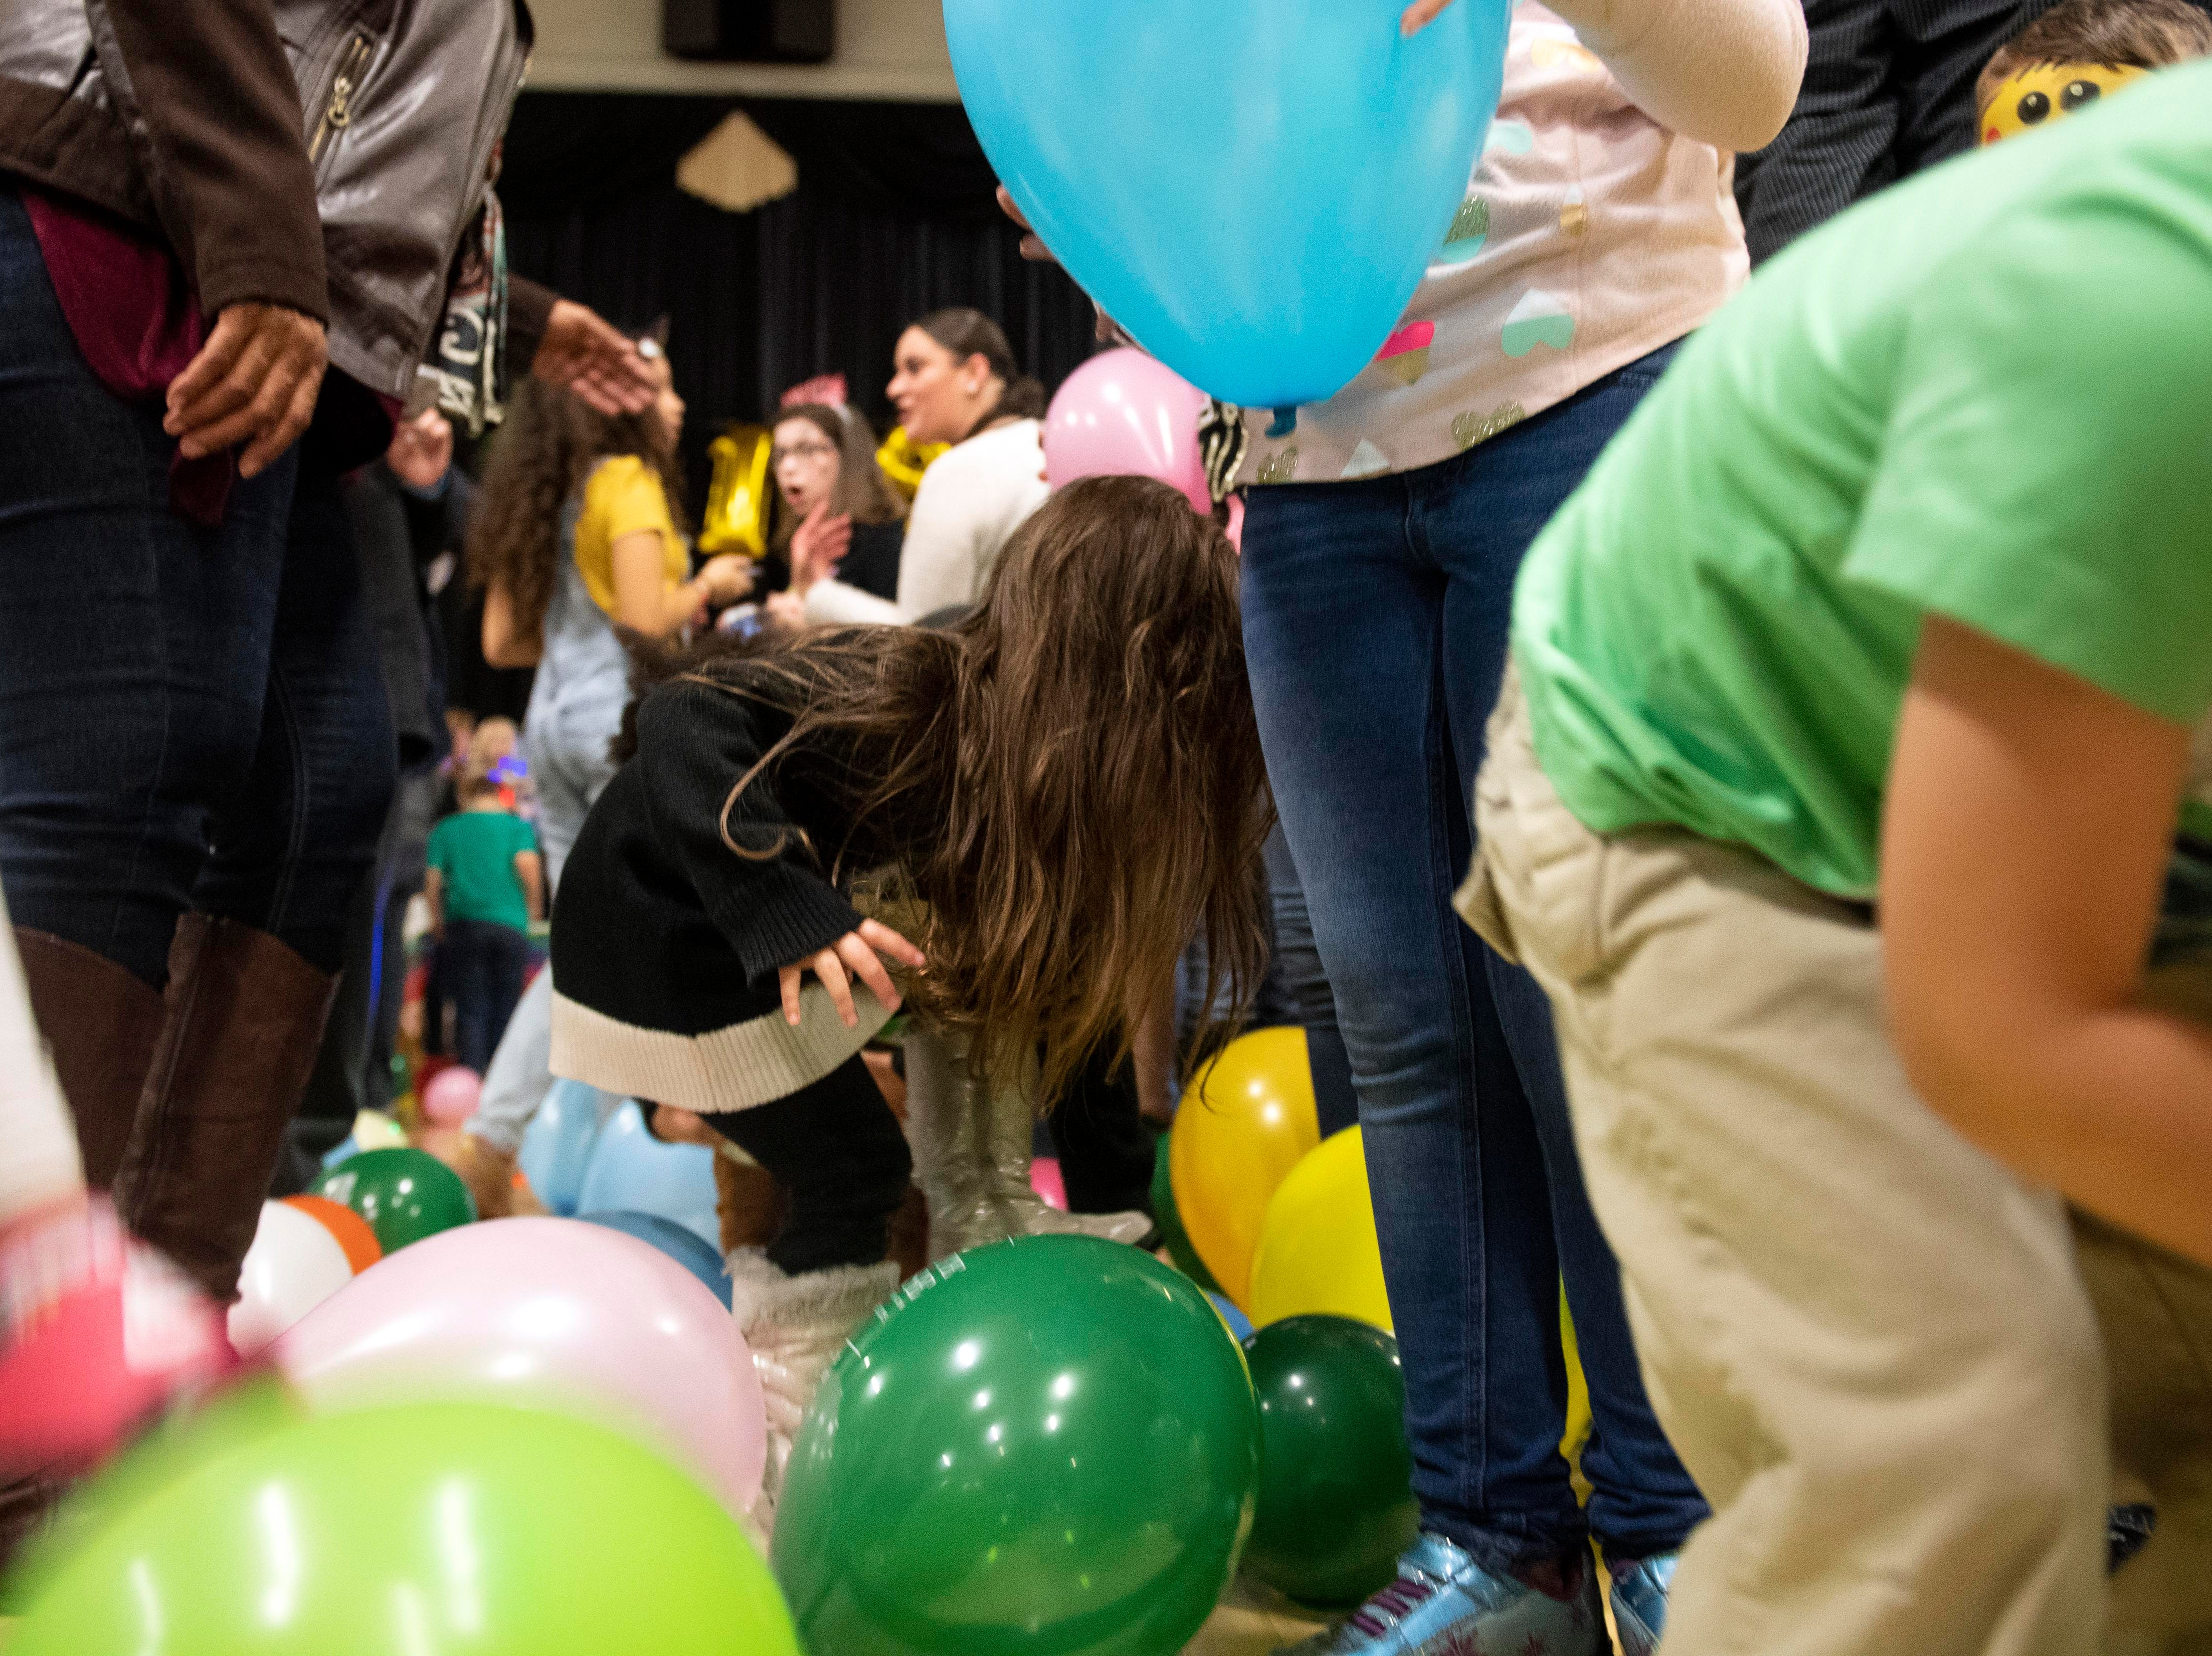 After hundreds of balloons drop, children rush to pick them up -- or pop them -- during the Children's Countdown to 2019 at Voni Grimes Gym, Monday, Dec. 31, 2018. Hundreds of kids rang in 2019 with a balloon drop at 8 p.m.